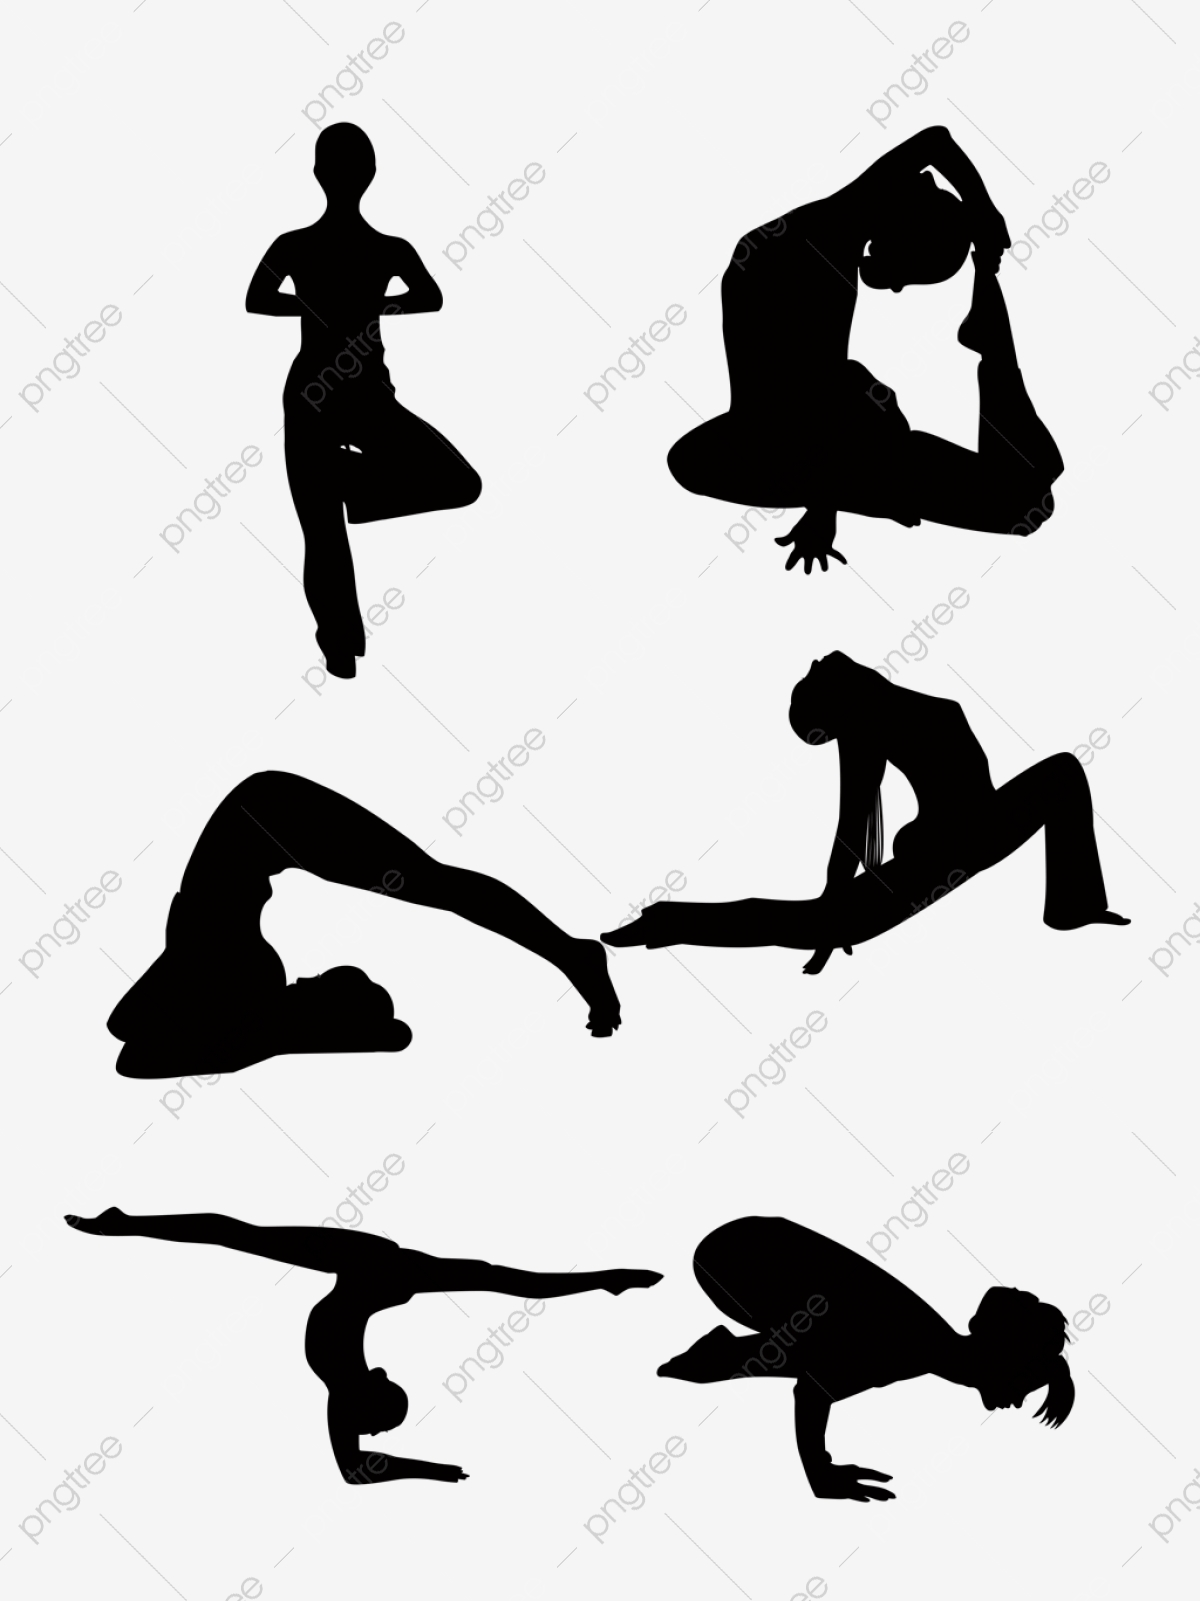 Vector Yoga Silhouette Vector Material 03 Action Fitness Exercise Png Transparent Clipart Image And Psd File For Free Download